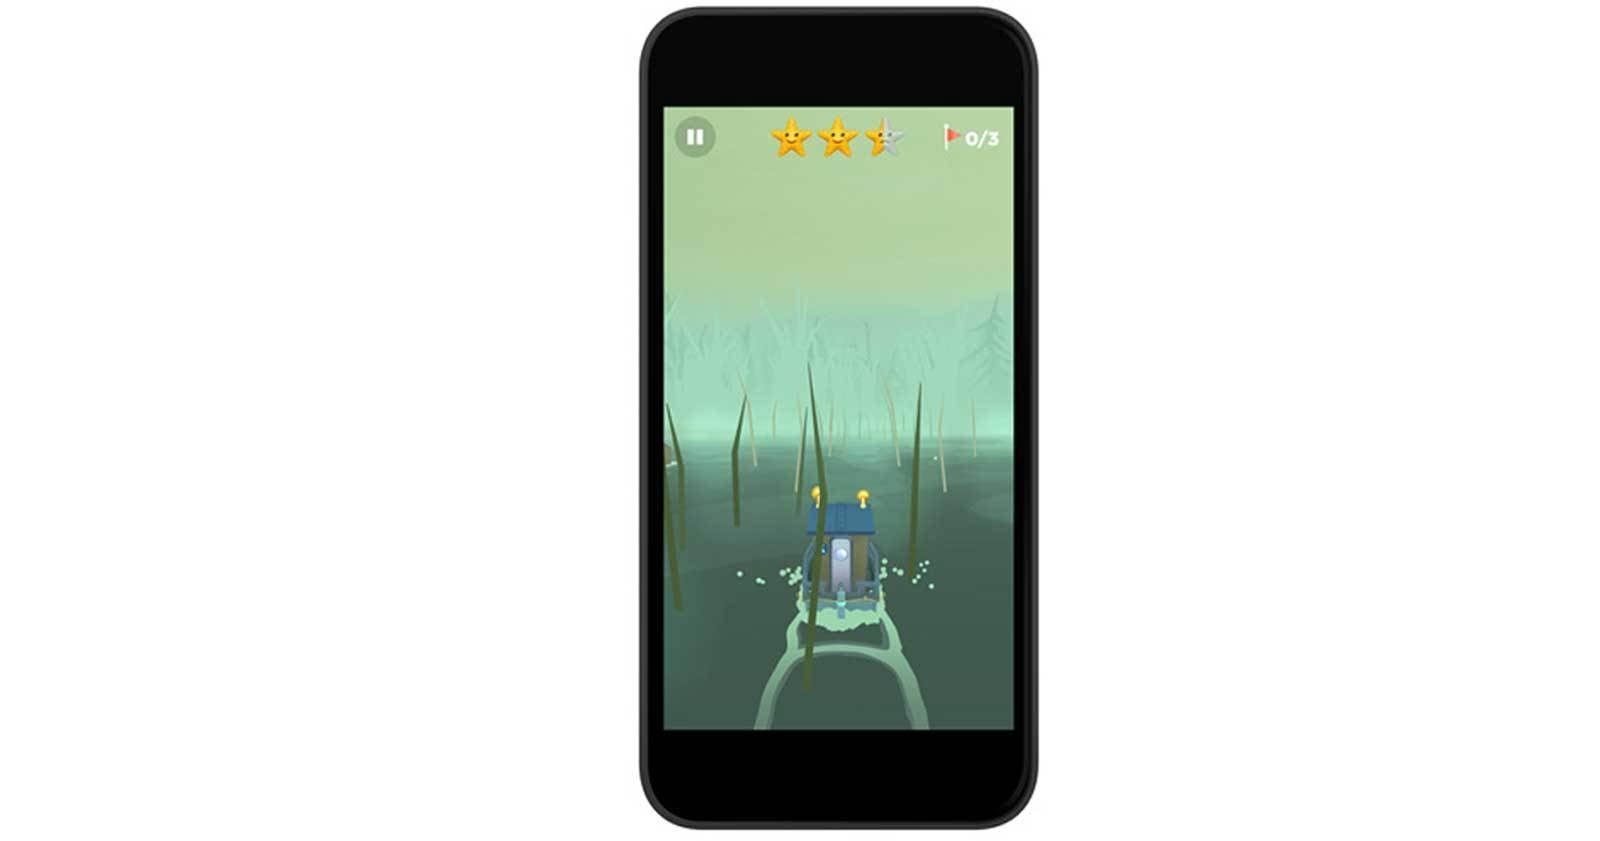 image of game on phone screen